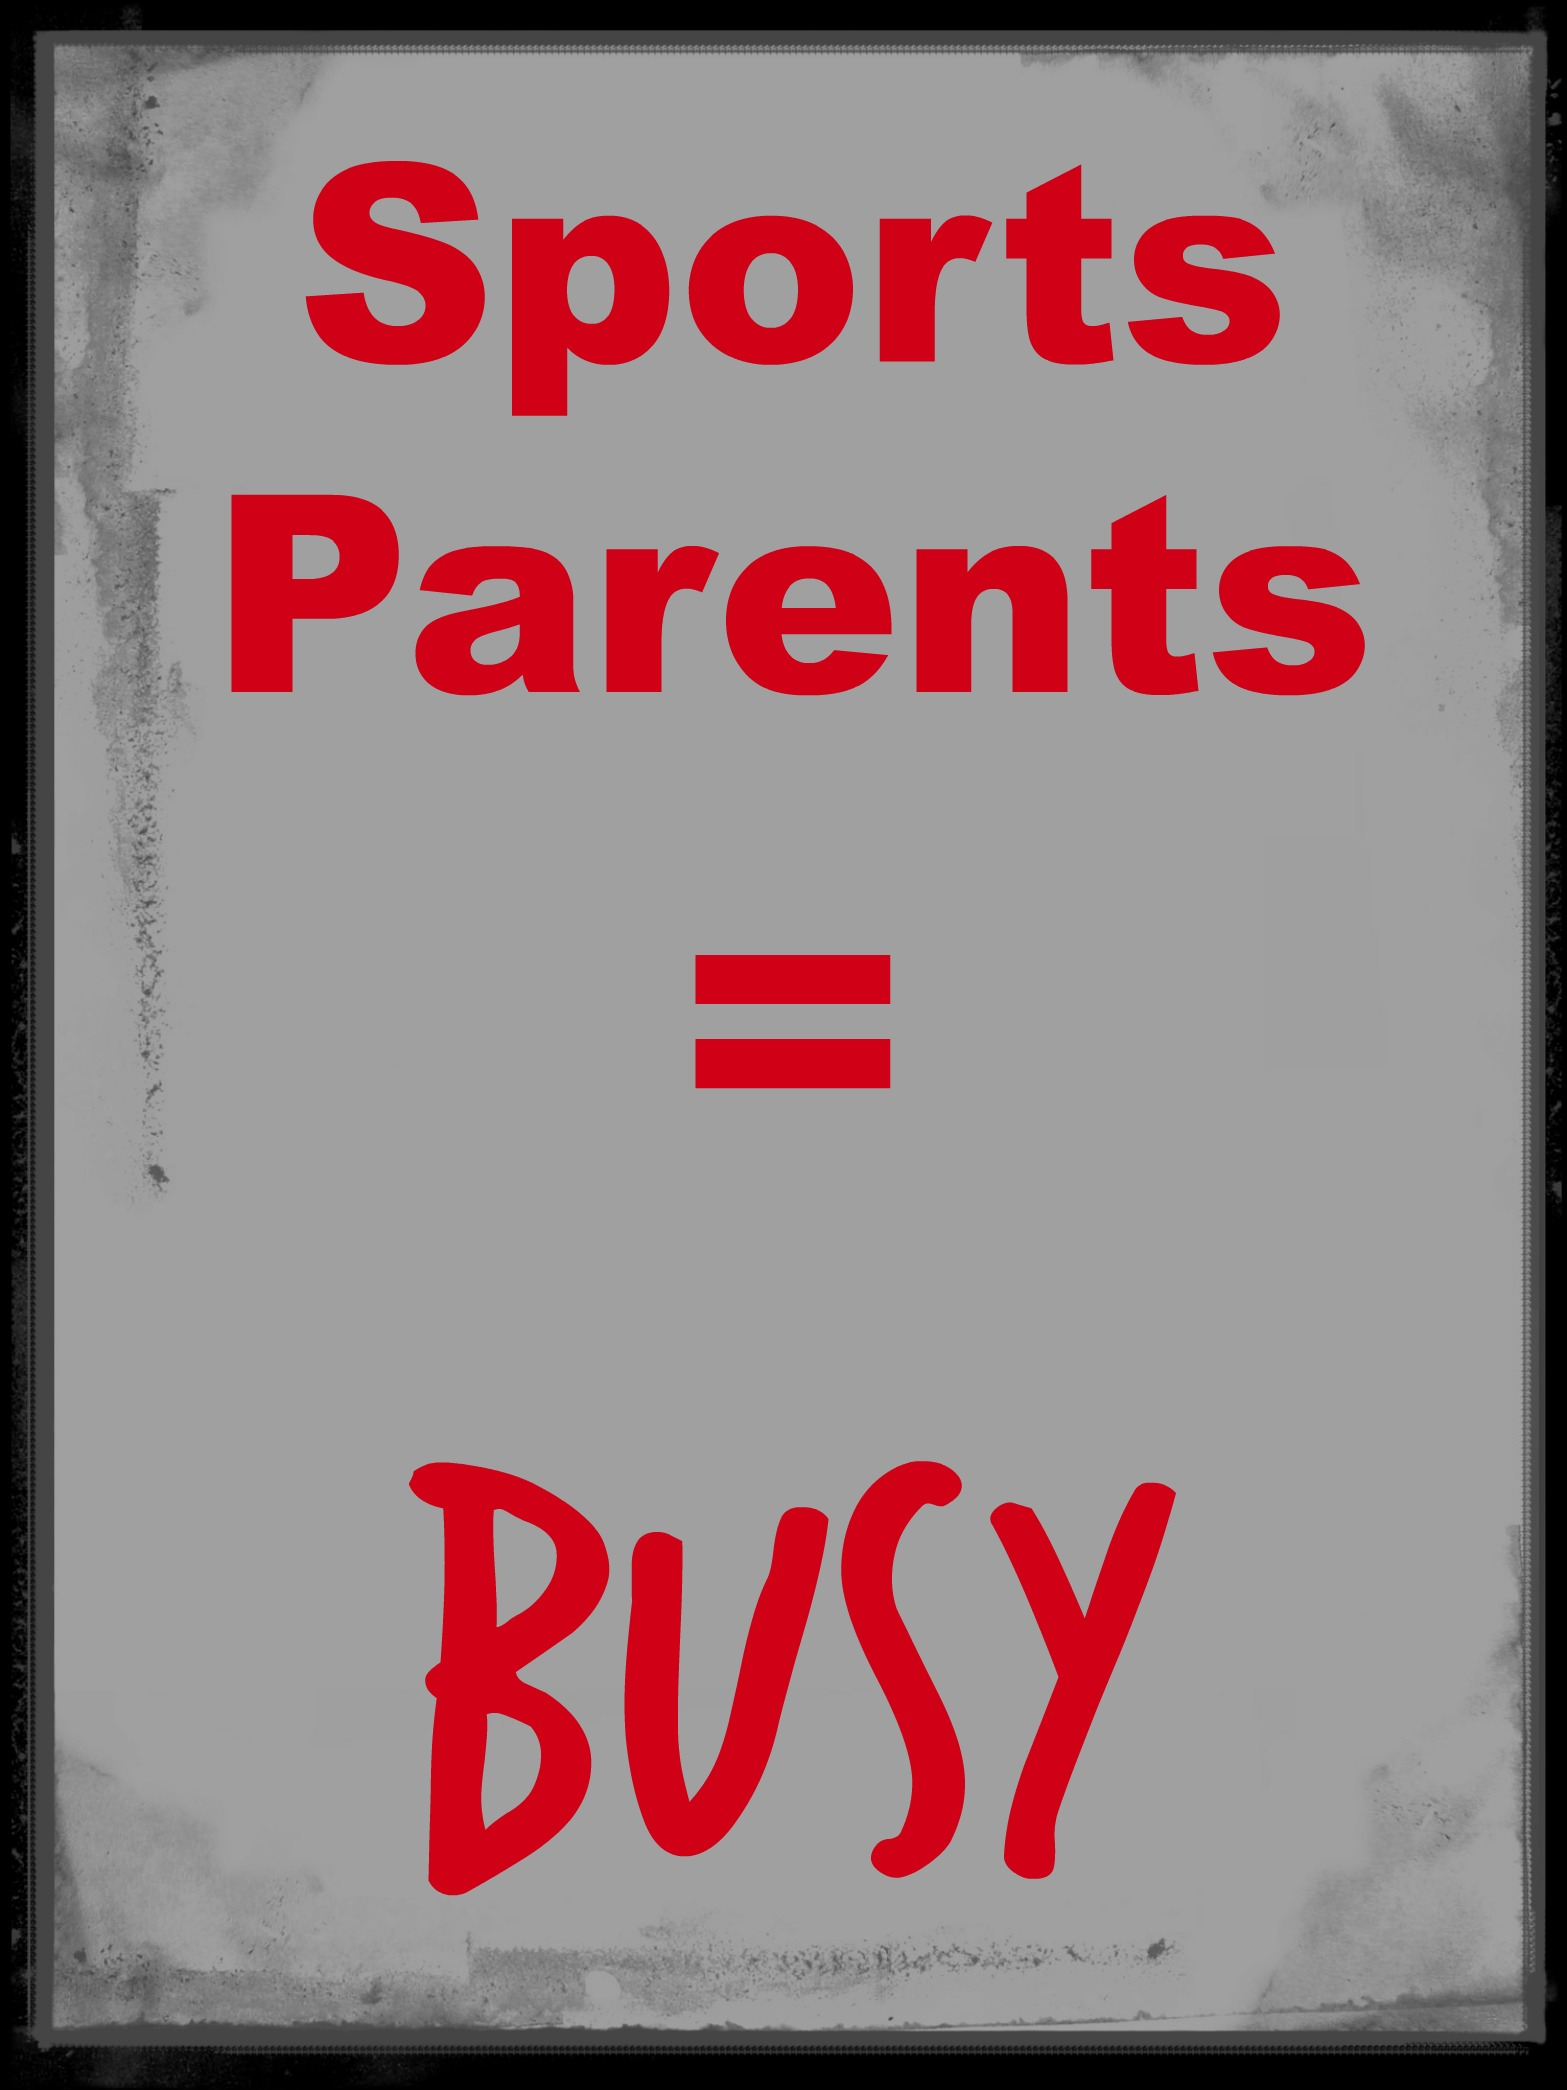 busy sports parents